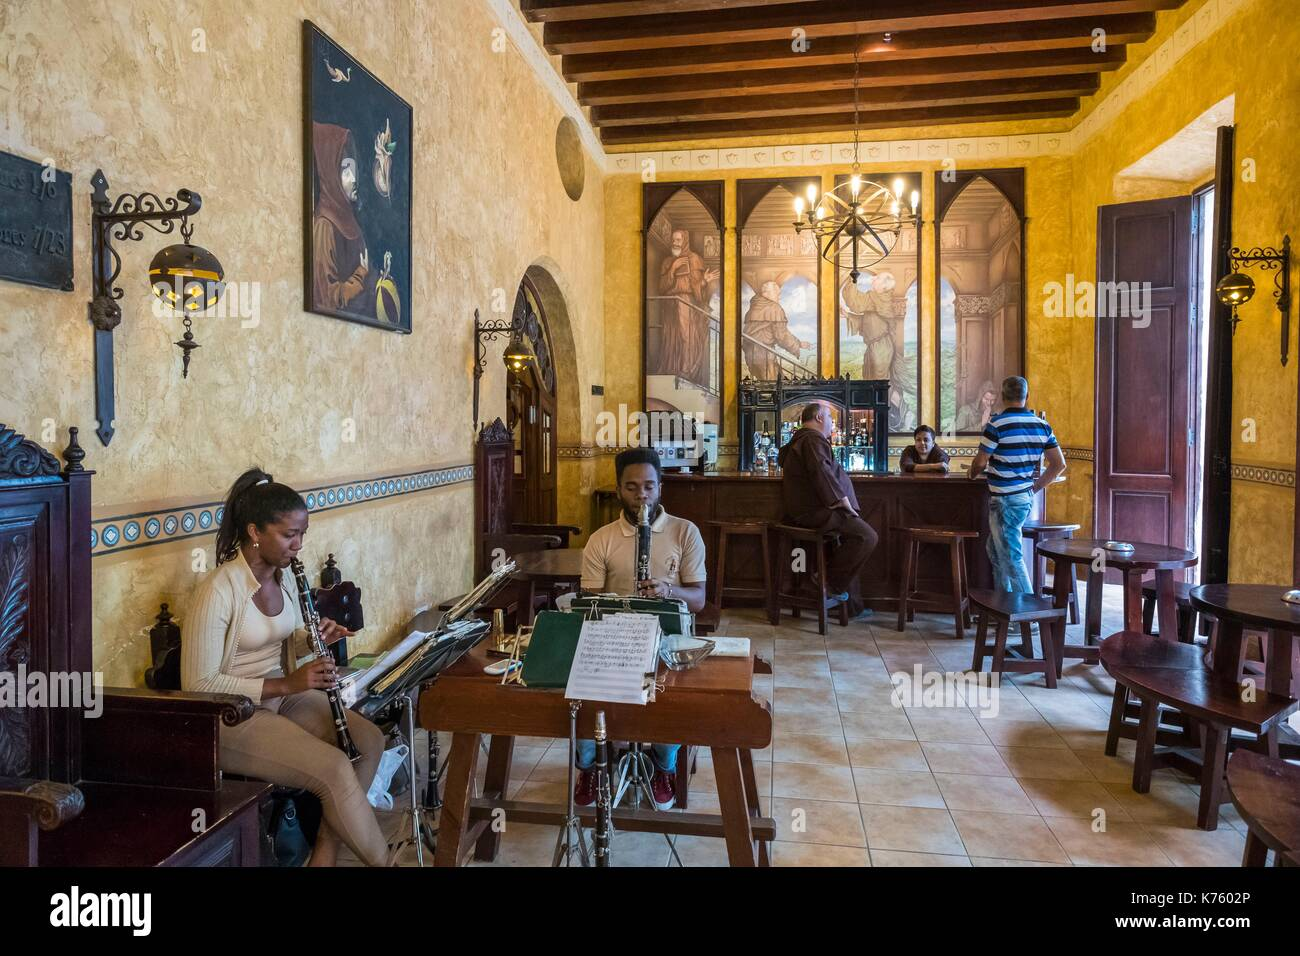 Cuba, Havana, Habana Vieja district (UNESCO World Heritage site), calle Teniente Rey (Brasil), Los Frailes hotel where the employees are dressed as Franciscan monks - Stock Image